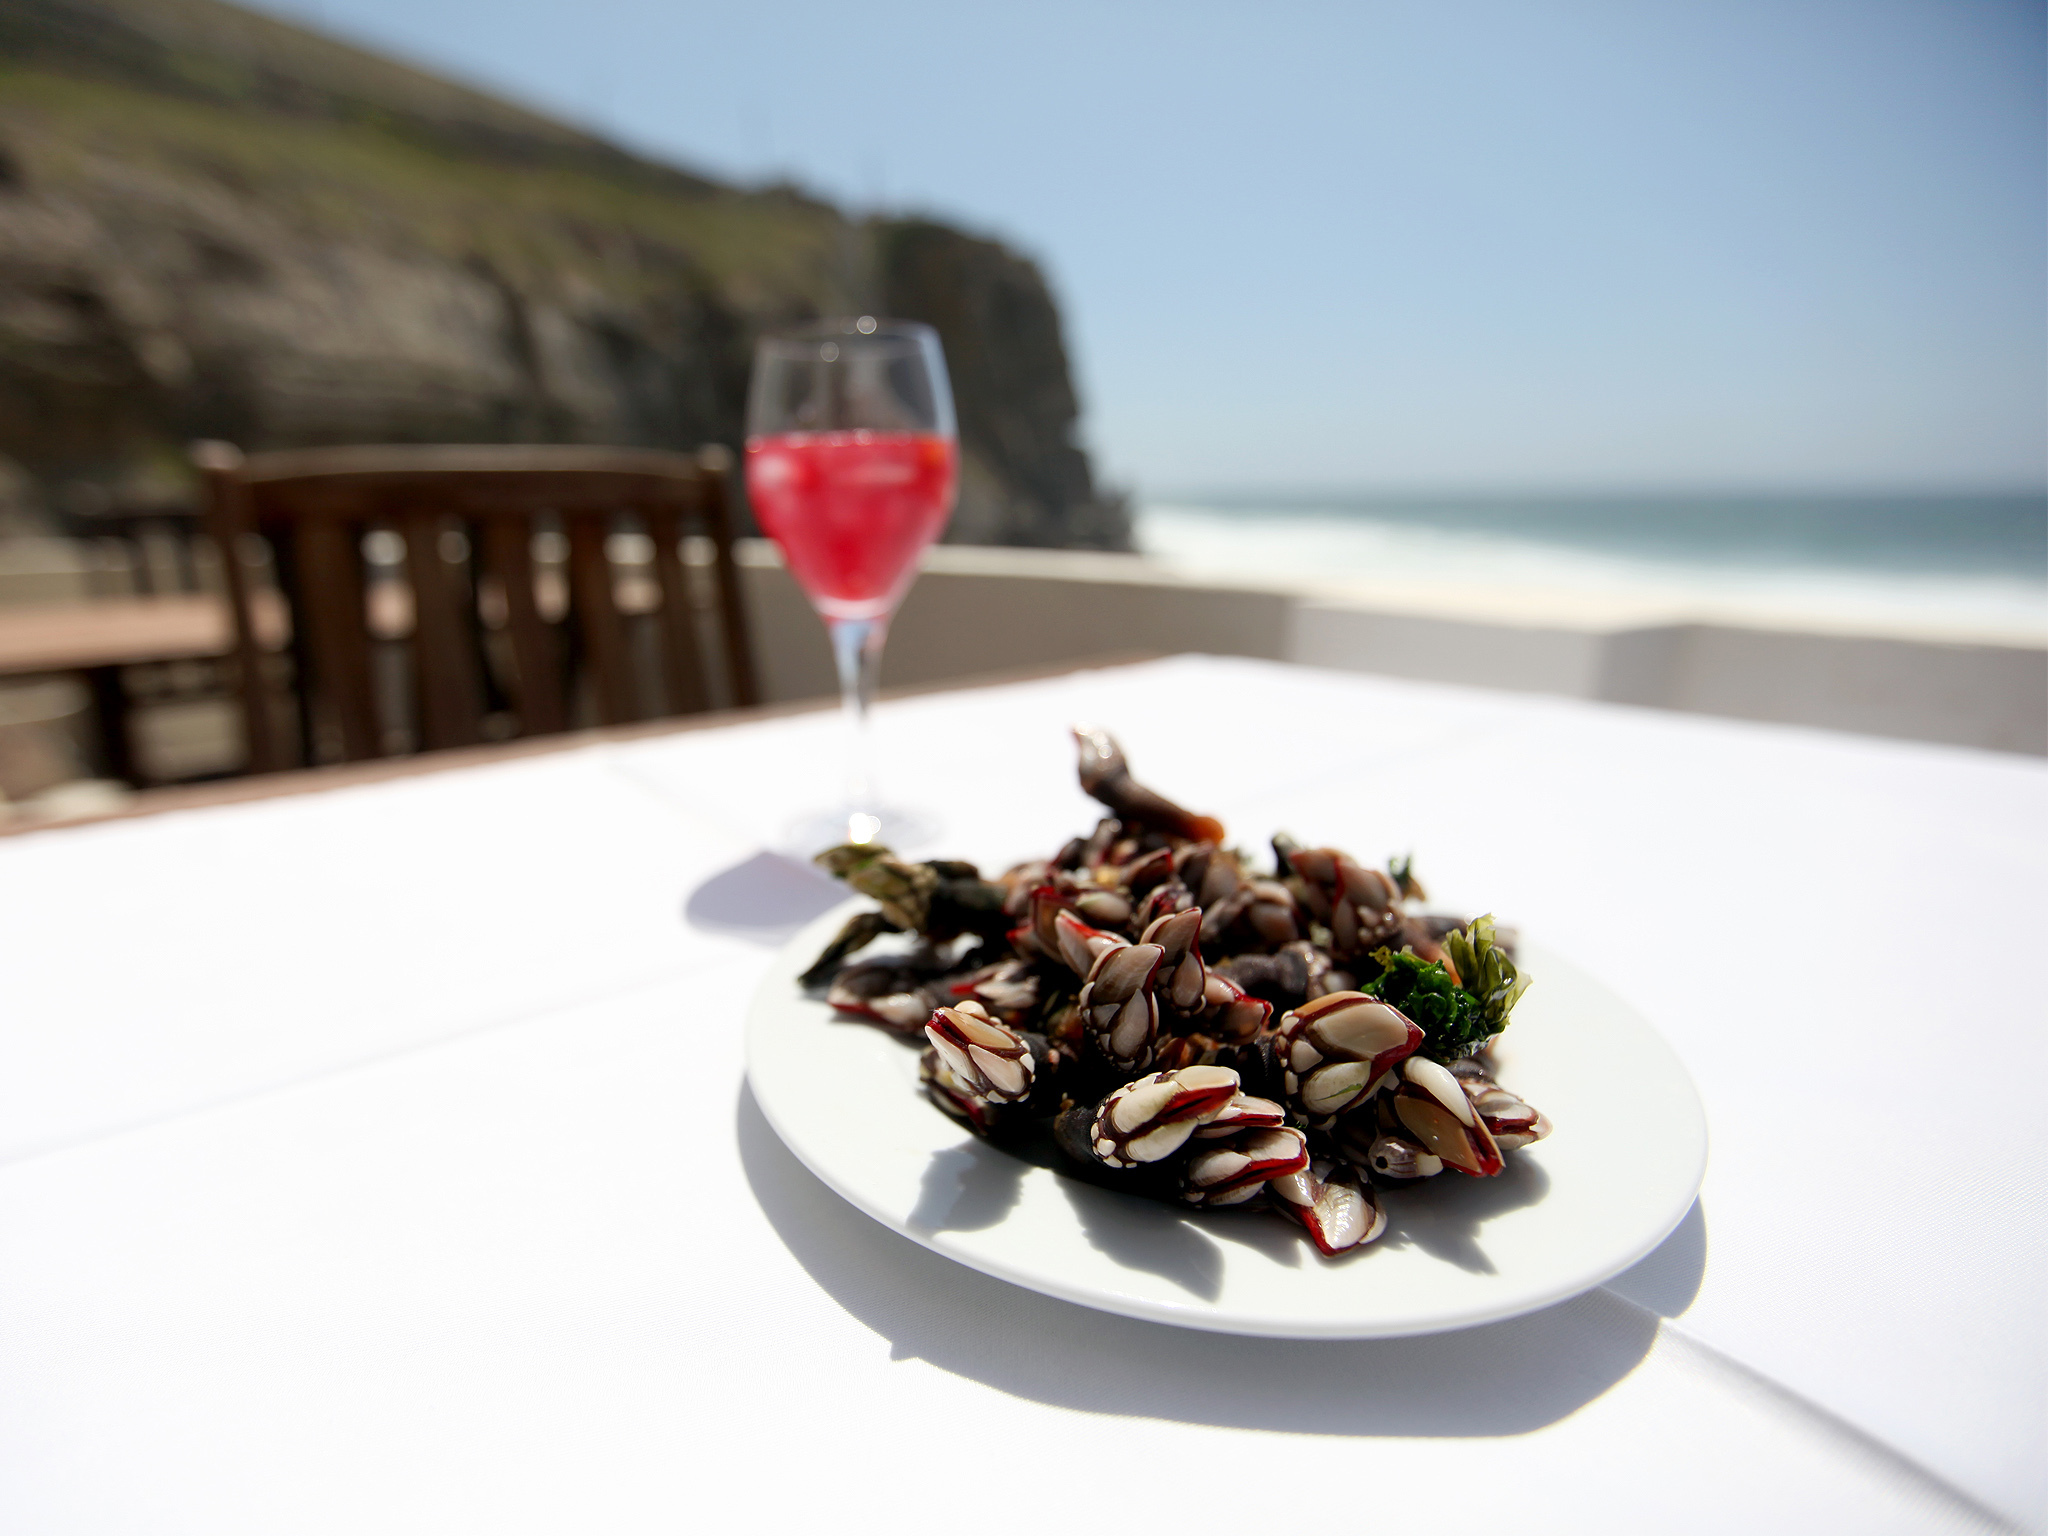 Azenhas do Mar - Percebes